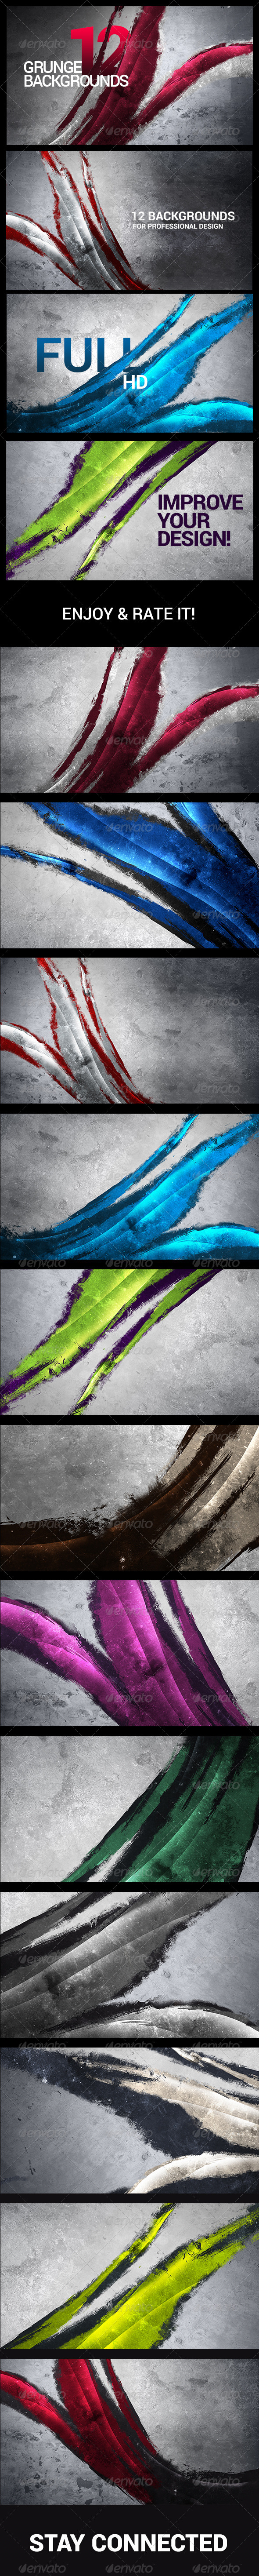 12 Painted/Urban/Abstract/Grunge Backgrounds - Abstract Backgrounds